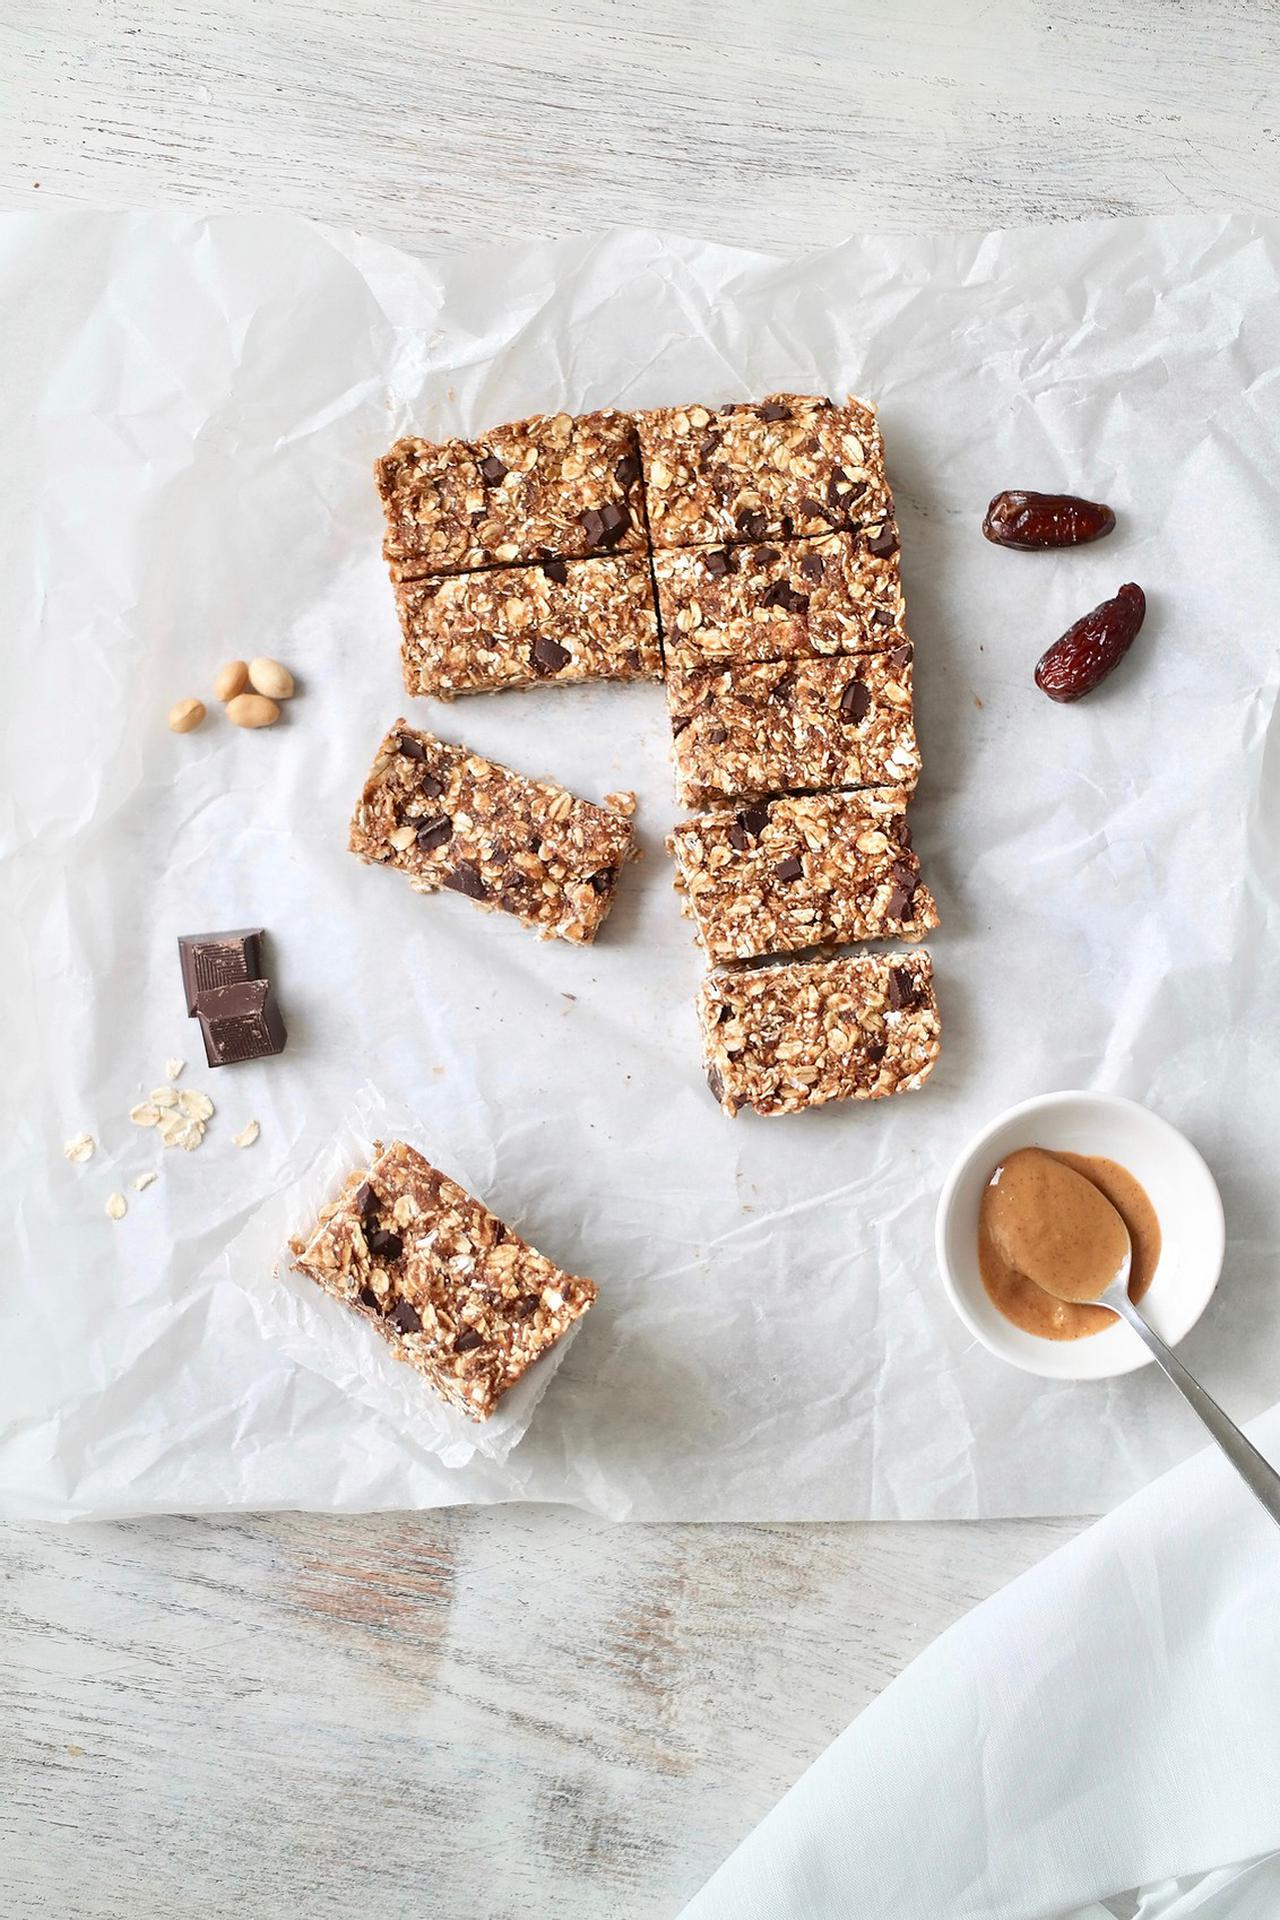 Main image of Chewy No-Bake Peanut Butter Dark Chocolate Oat Bars